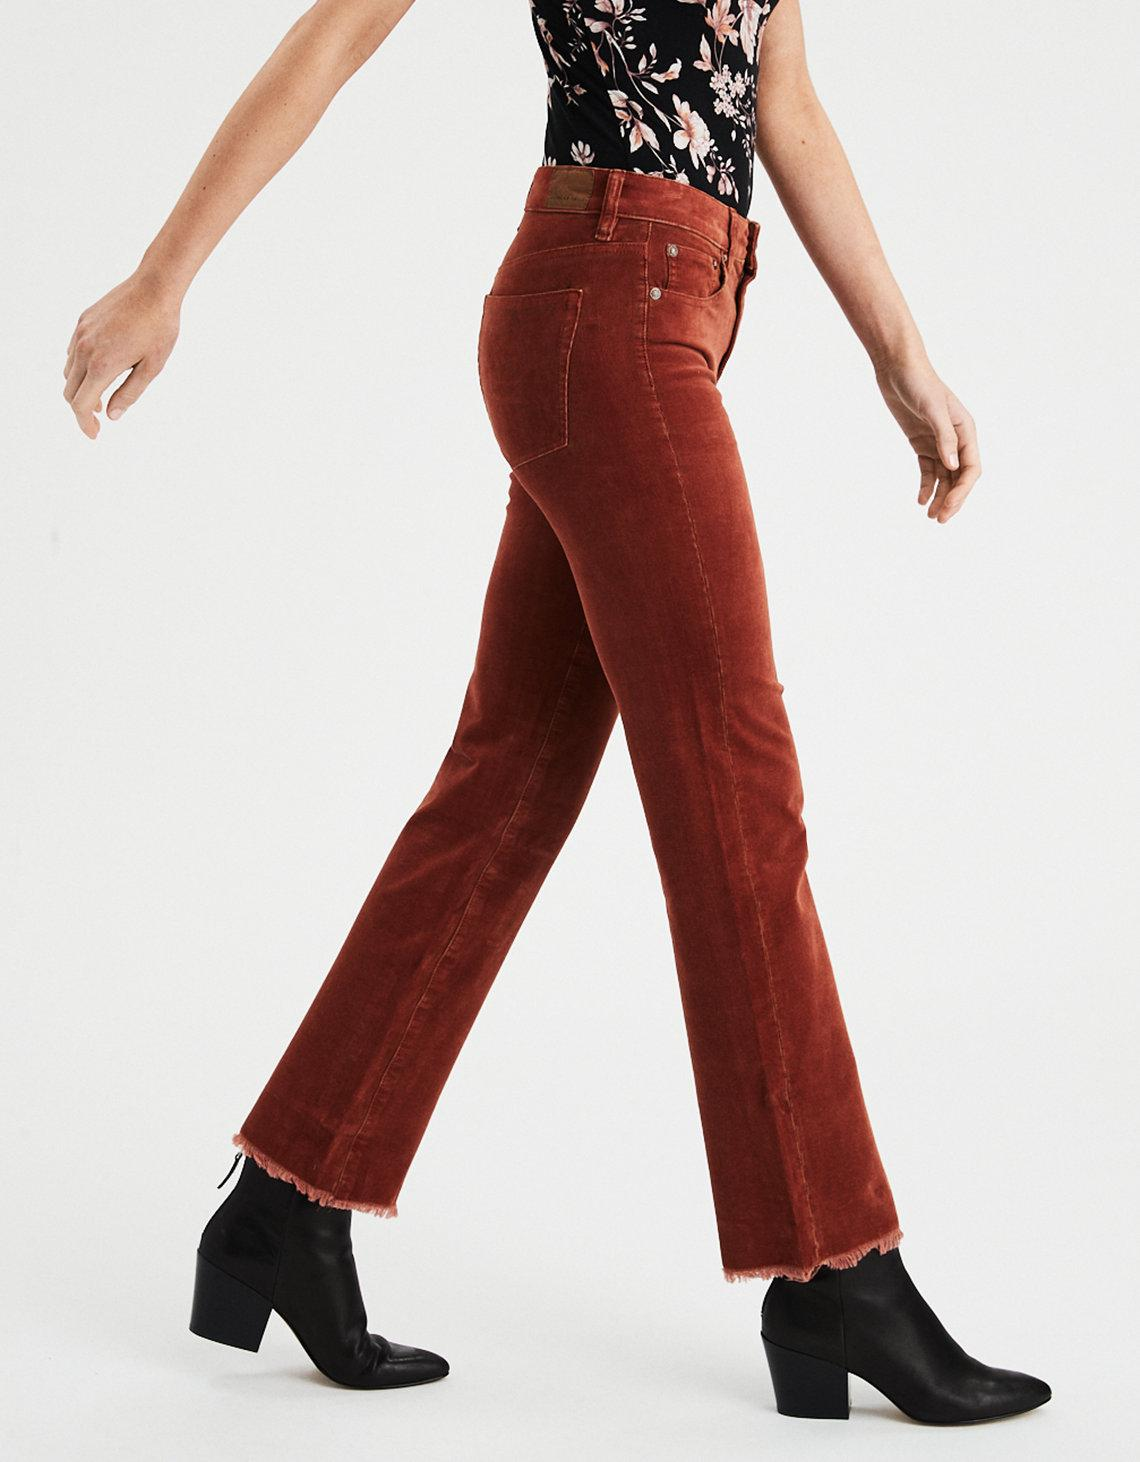 a878adbfef American Eagle High-waisted Crop Flare Corduroy Pant in Brown - Lyst